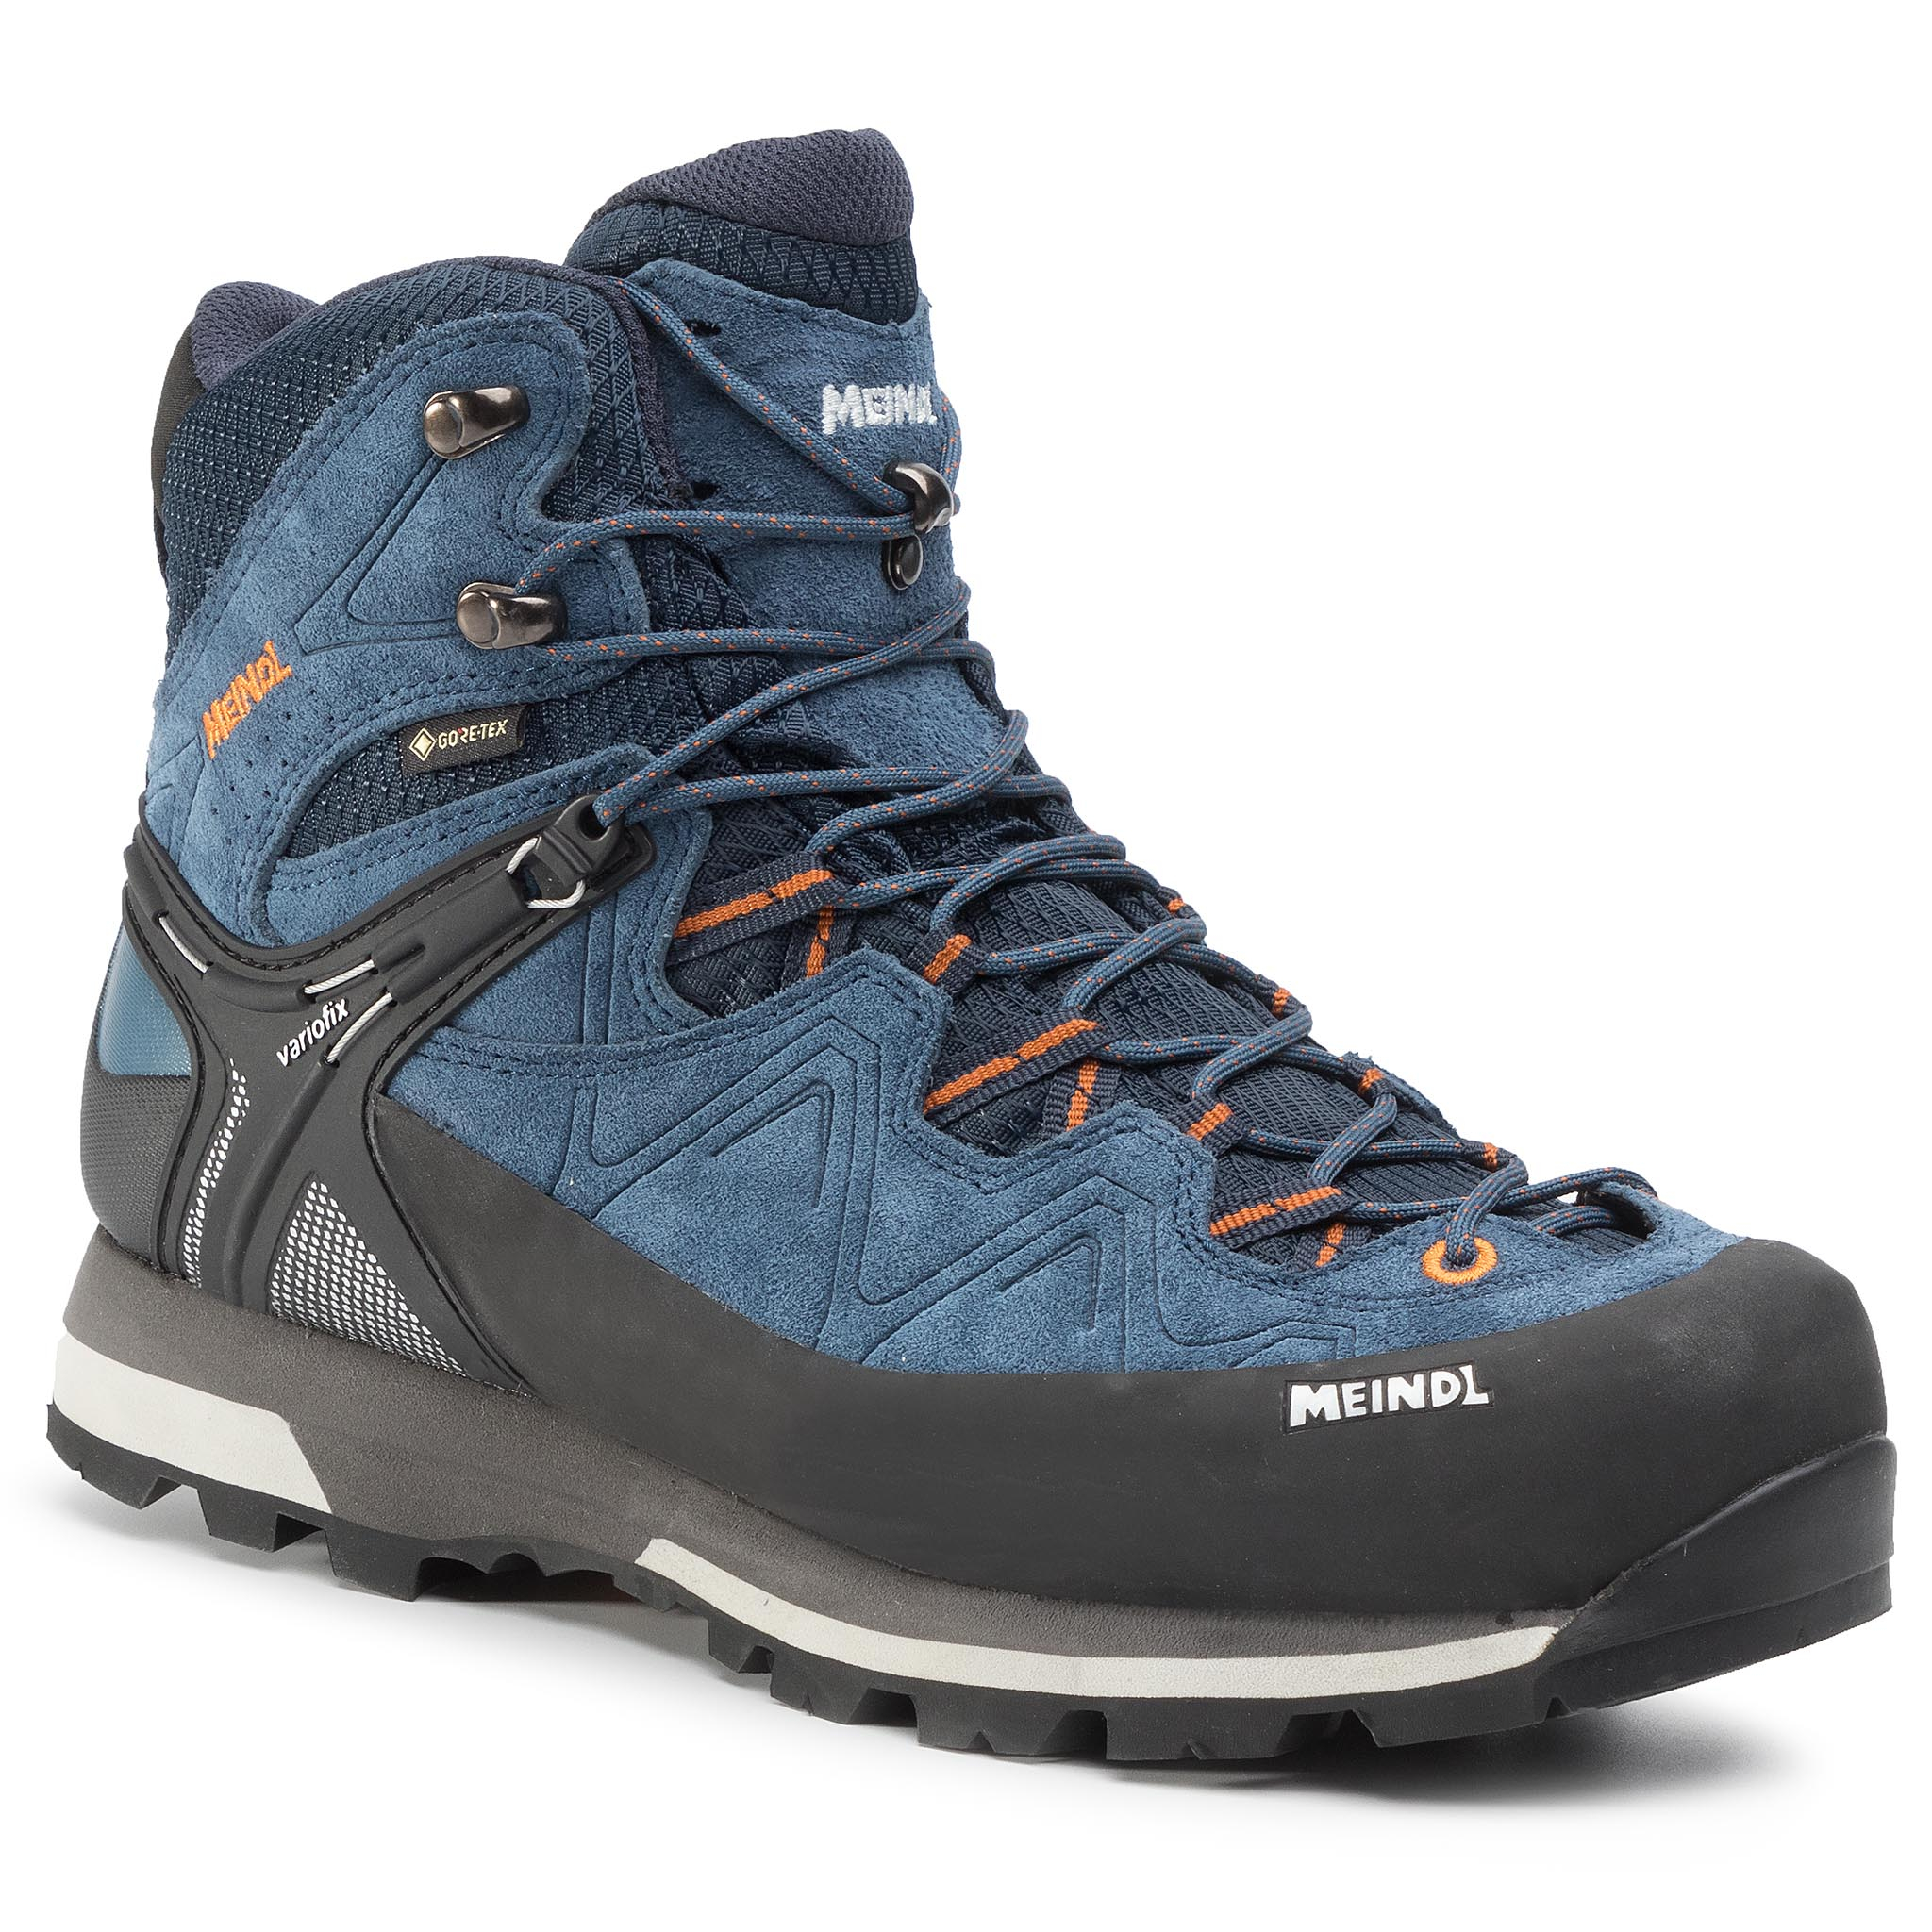 Trekkings Meindl - Tonale Gtx Gore-Tex 3844 Jeans/Orange 29 imagine epantofi.ro 2021